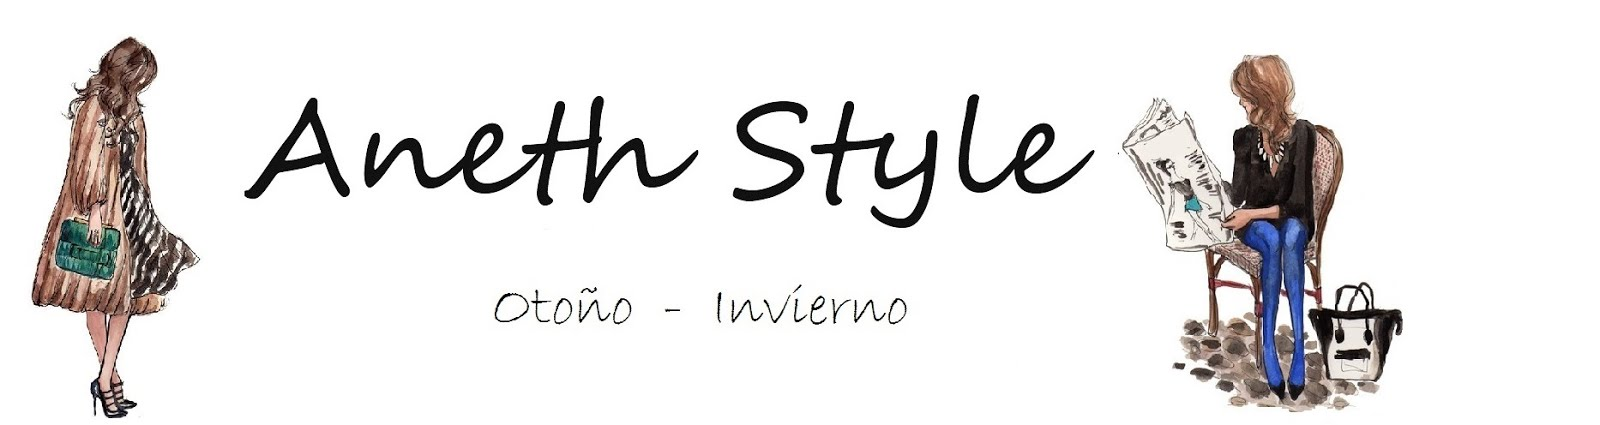 Aneth Style